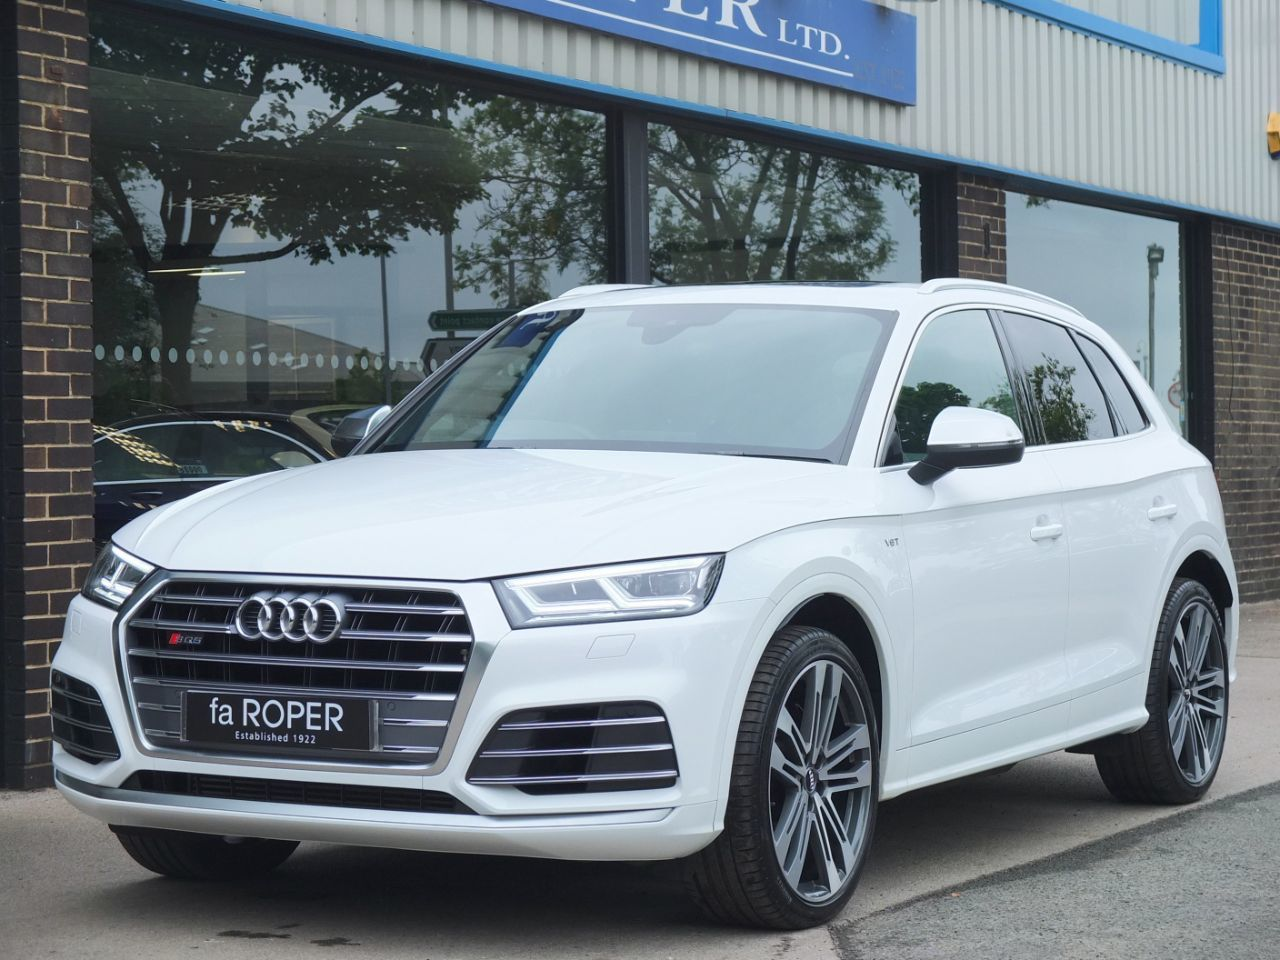 Audi Q5 3.0 SQ5 quattro Auto Estate Petrol Ibis WhiteAudi Q5 3.0 SQ5 quattro Auto Estate Petrol Ibis White at fa Roper Ltd Bradford